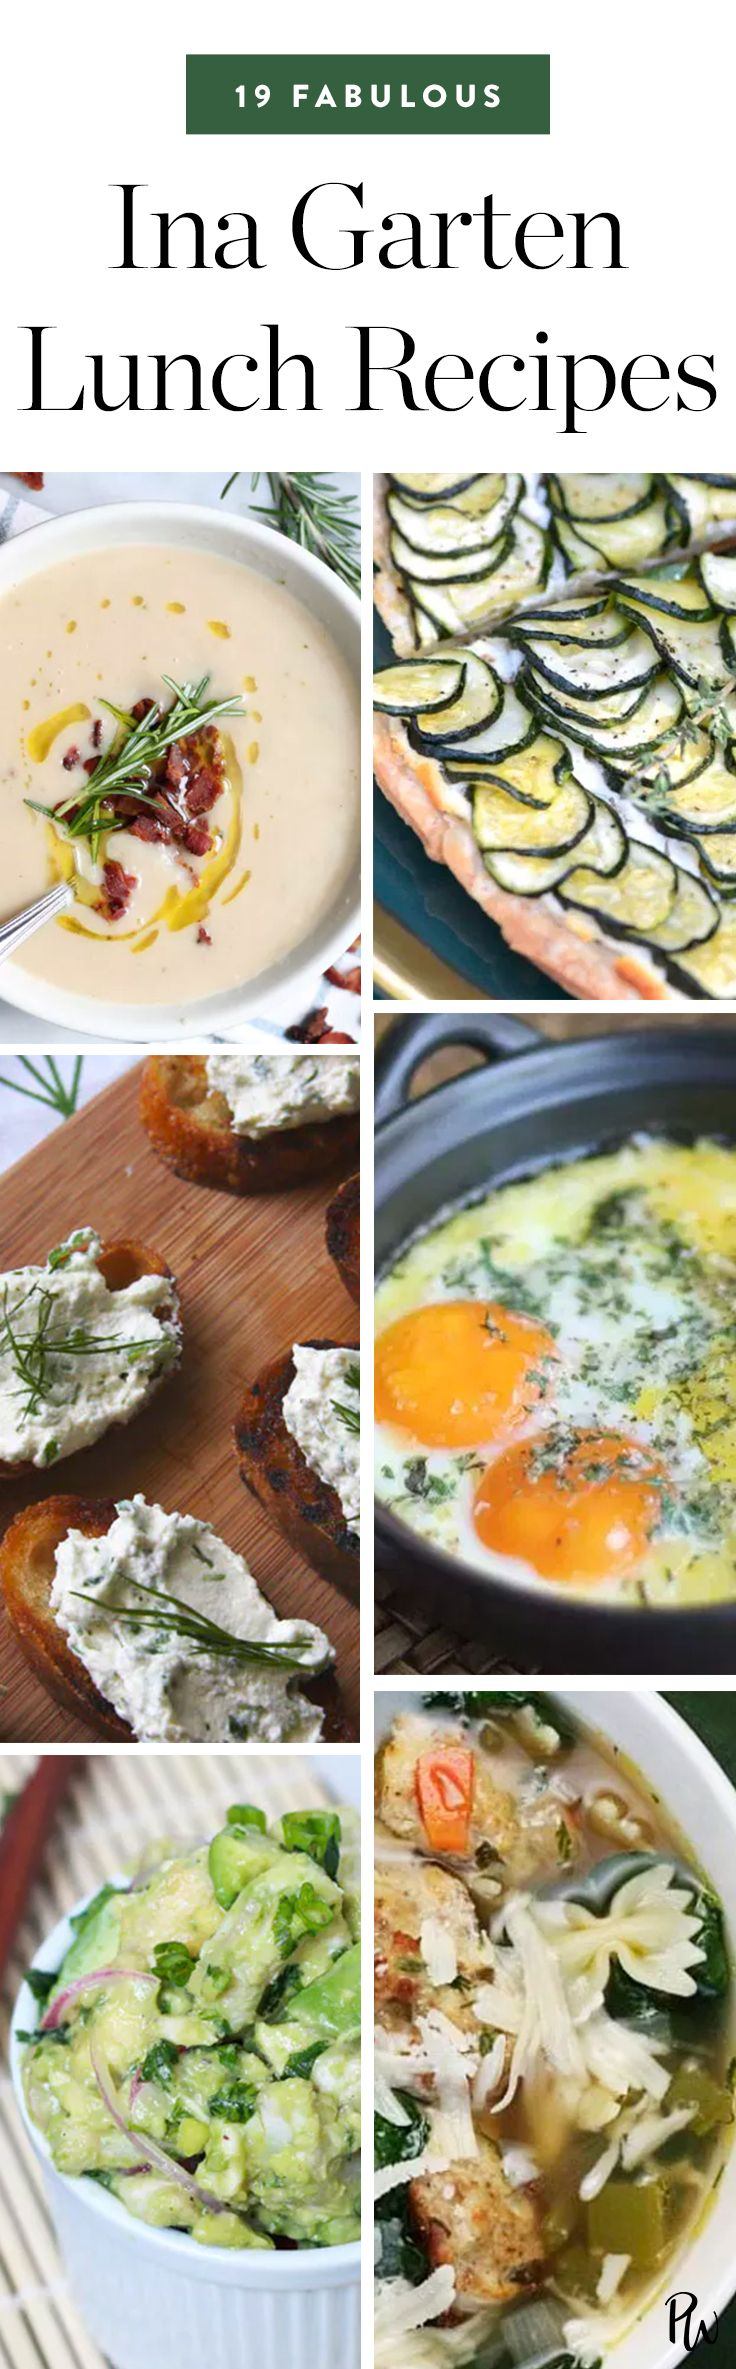 From ricotta crostini to Italian wedding soup, get the best Ina Garten lunch recipes your friends and family will love here. #crostini #weddingsoup #avocado #tuna #whitebeansoup #inagarten #inagartenrecipes #inagartenlunch #lunchpartyrecipes #lunchrecipes #italianweddingsoup